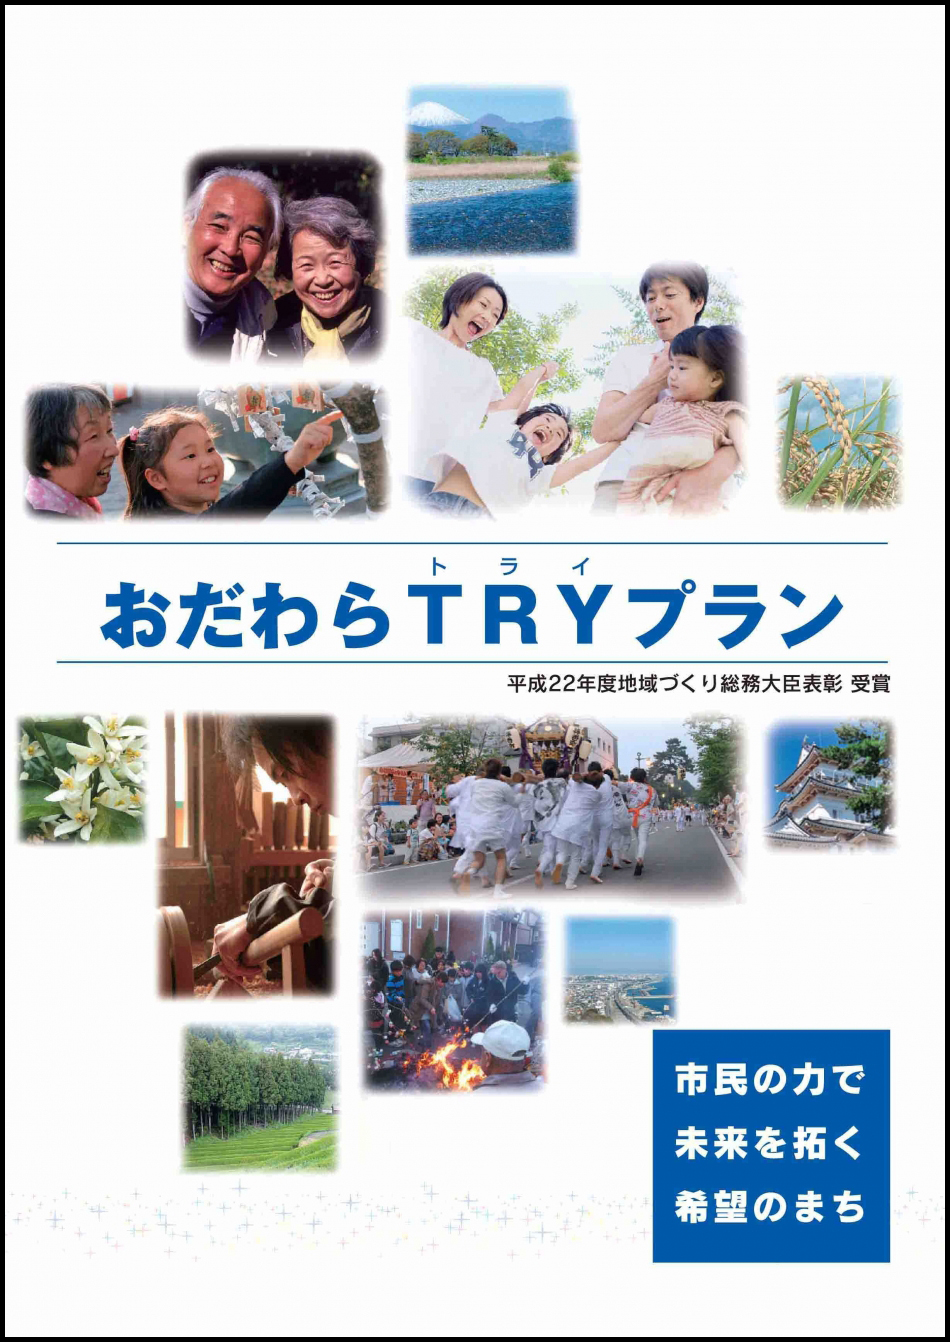 odawara TRY plan